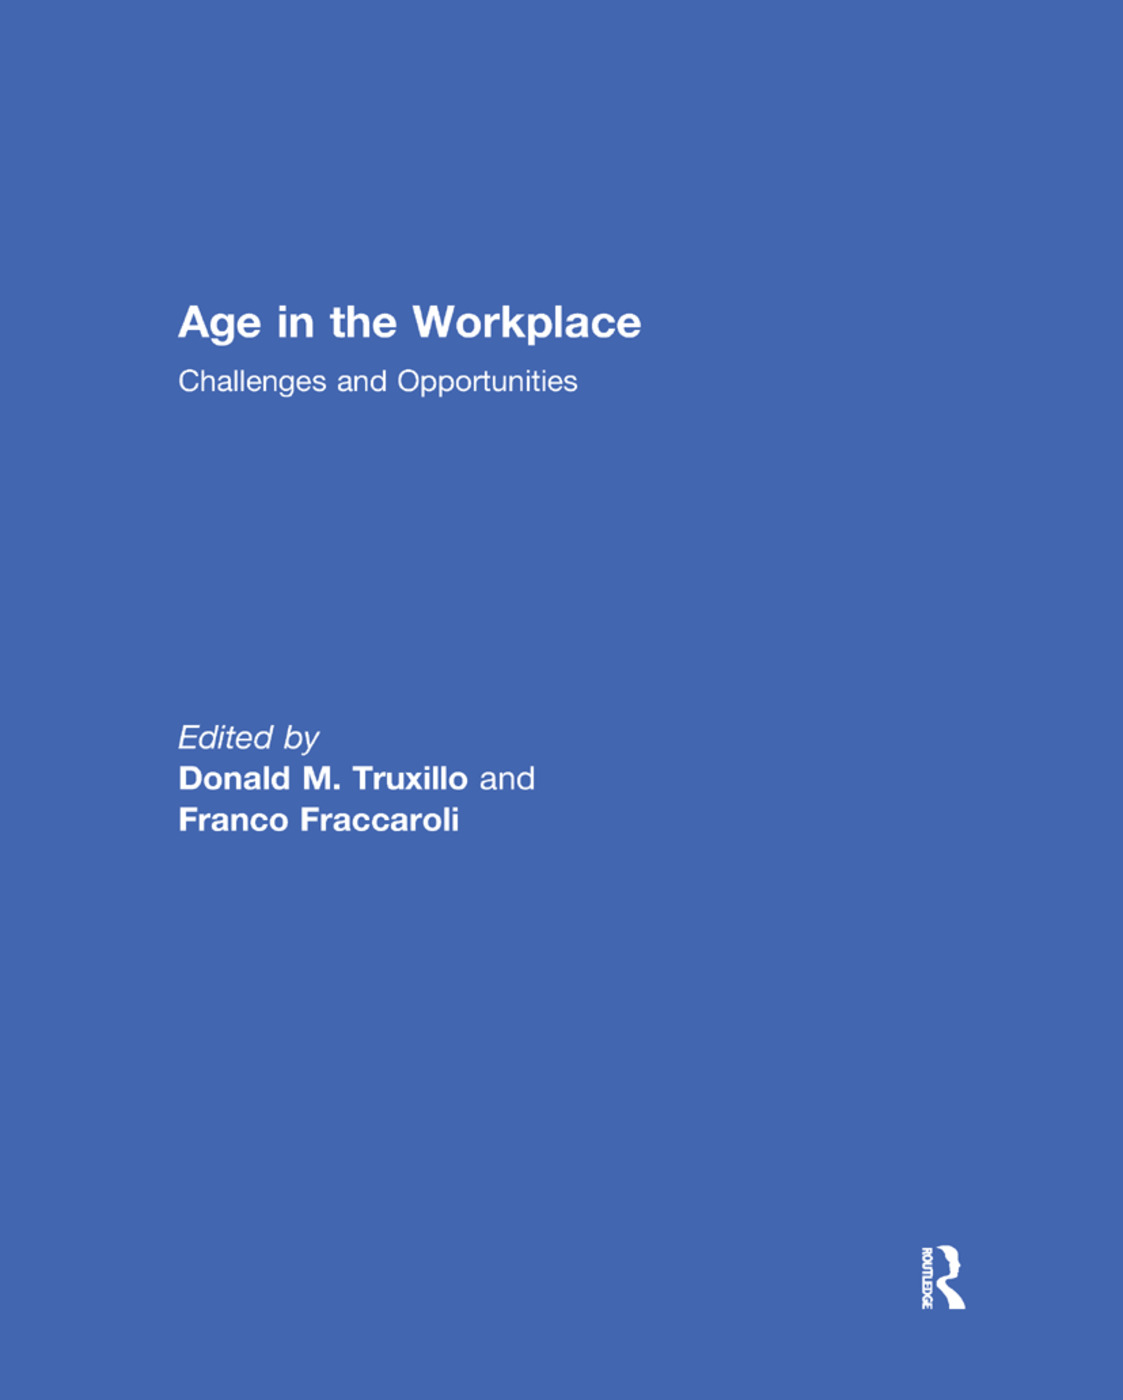 Age in the Workplace